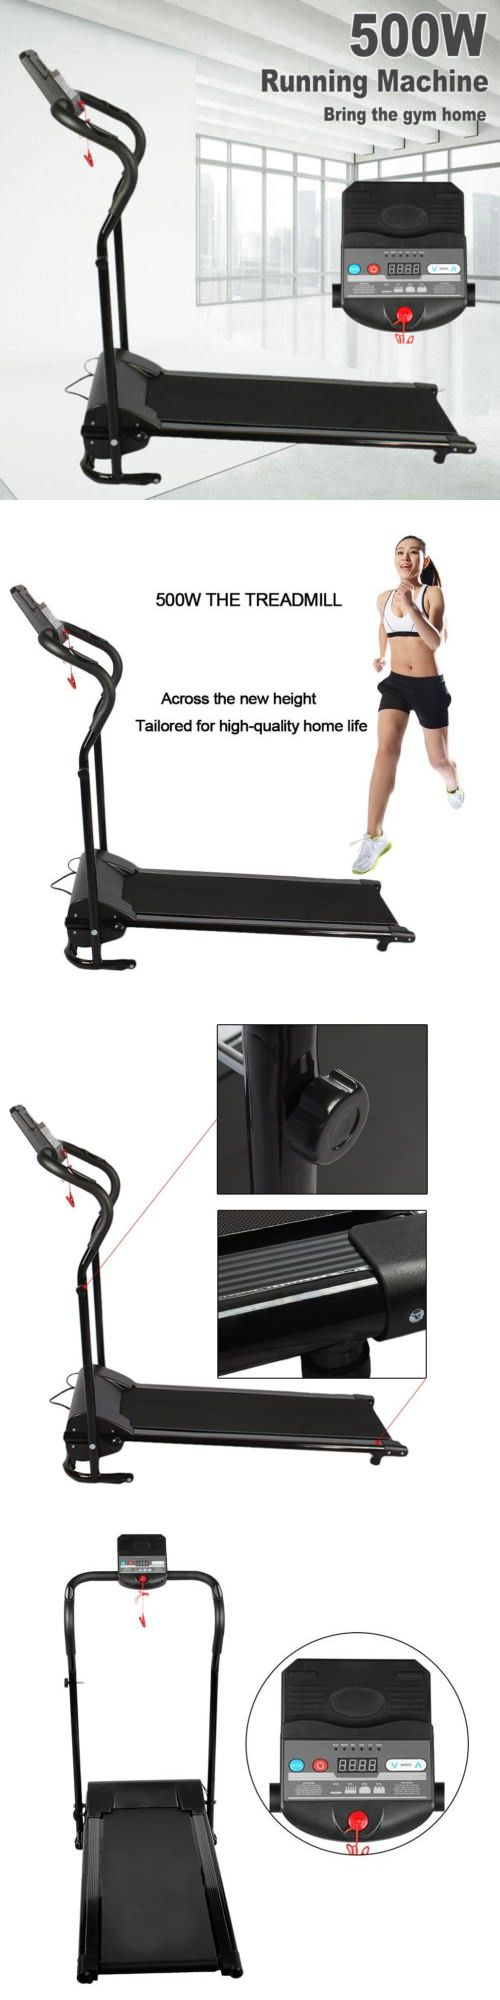 Treadmills 15280: 500W Foldable Adult Electric Treadmill Motorized Running Machine Jogging Sports -> BUY IT NOW ONLY: $164.95 on eBay!